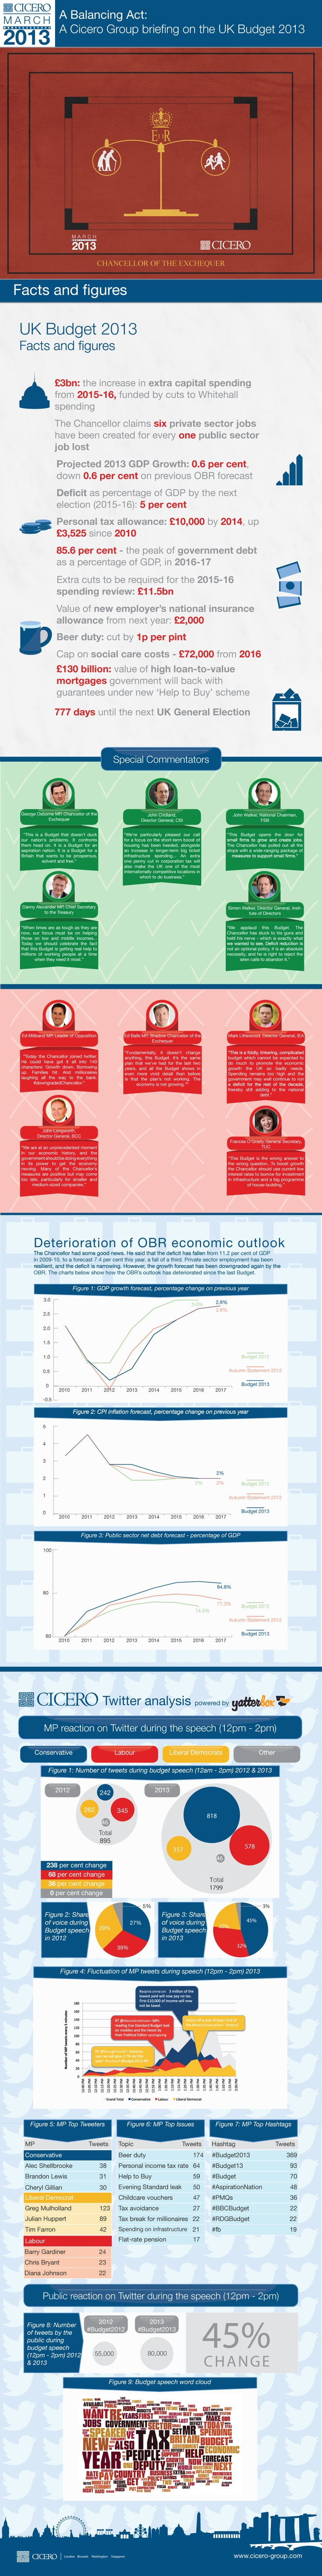 A Balancing Act:  A Cicero Group briefing on the UK Budget 2013 #infographic #budget2013